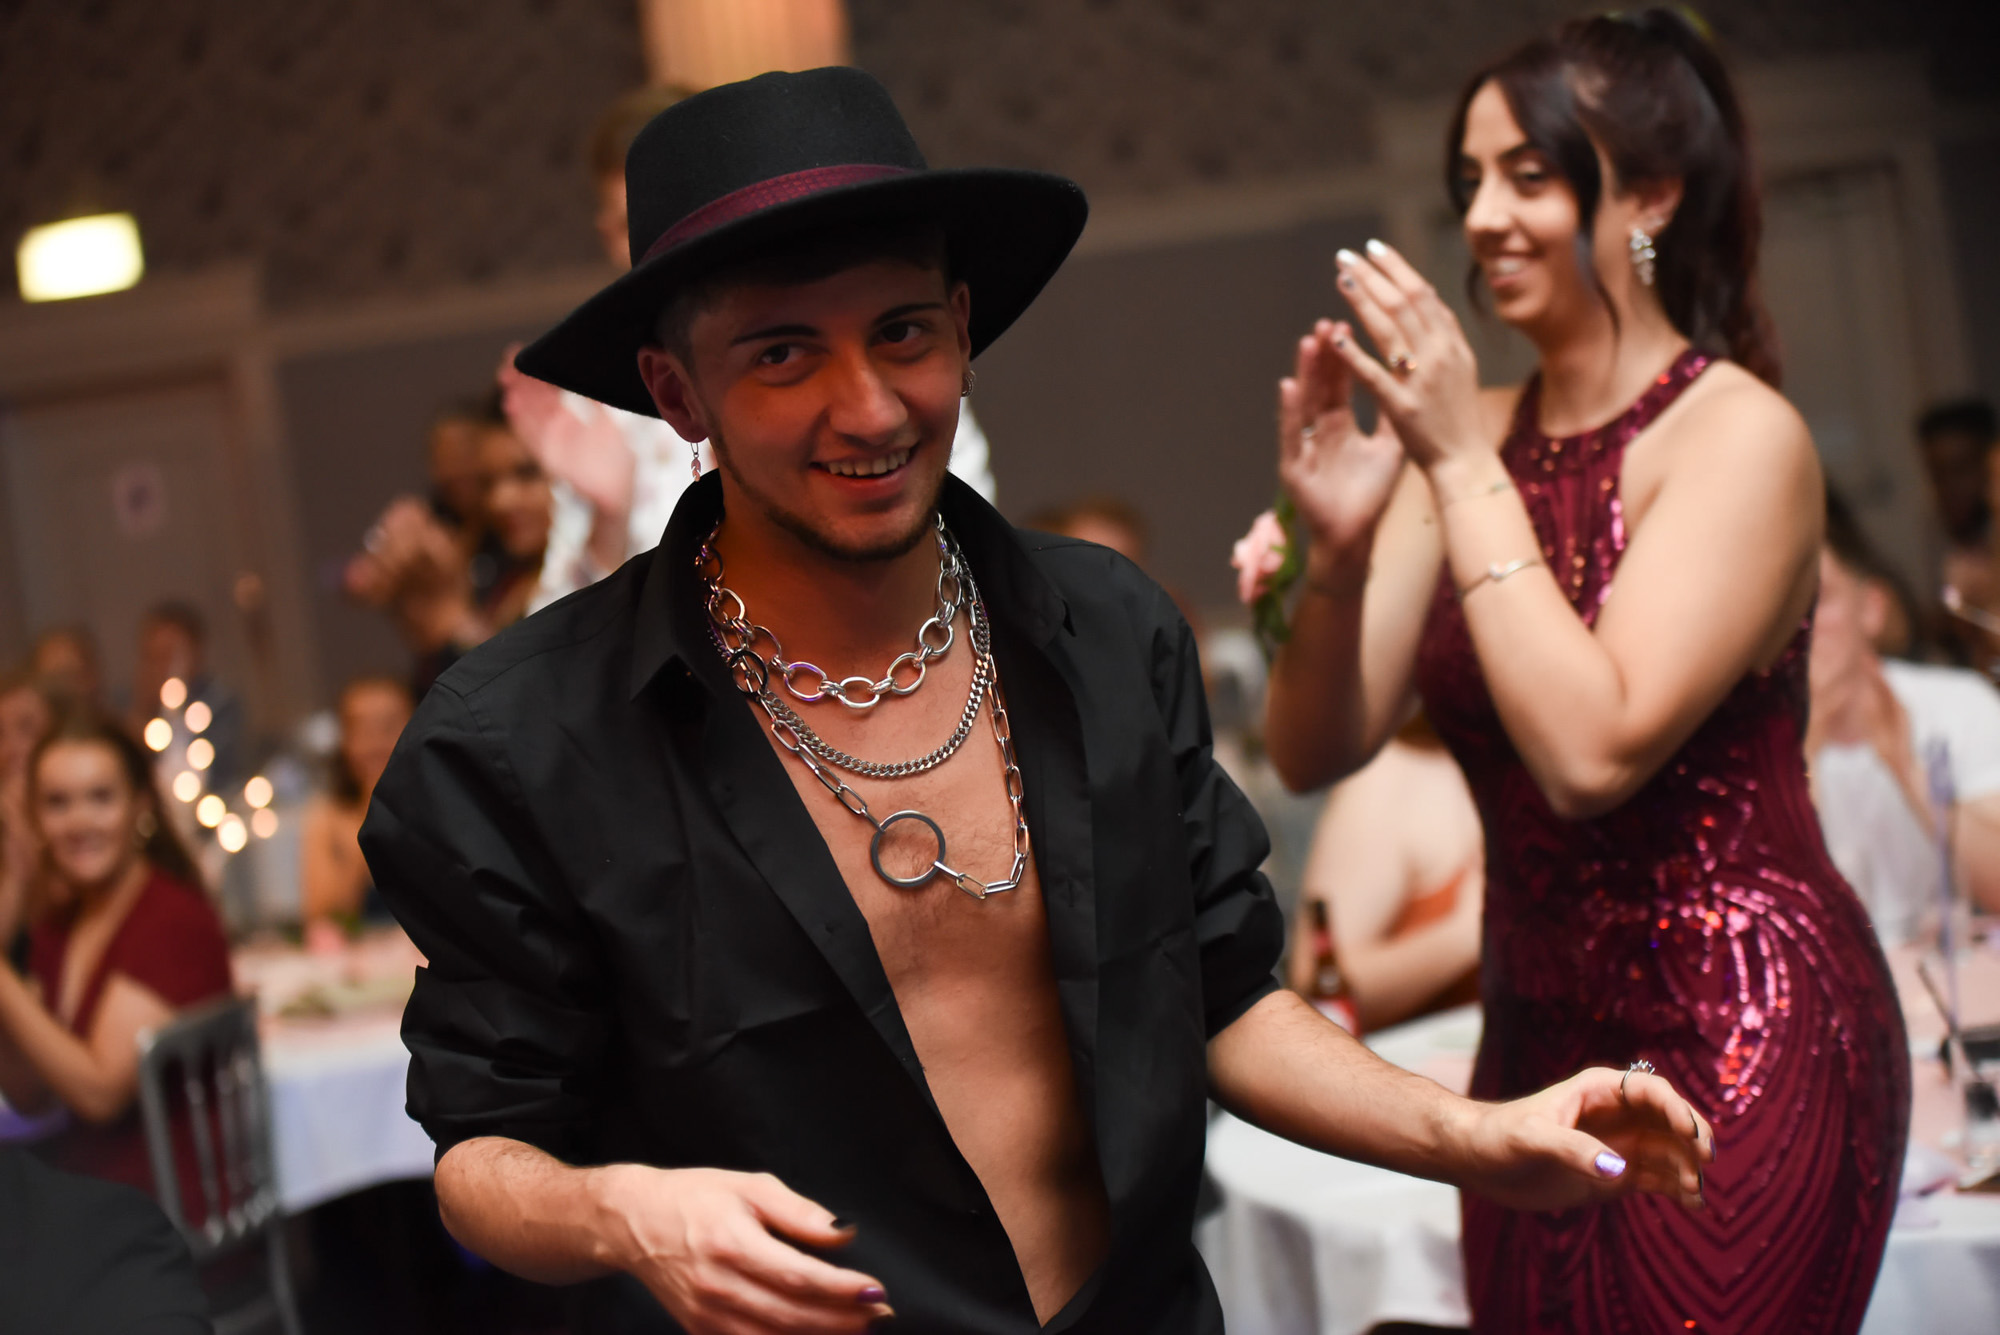 UCLAN_MT_BALL_2019_383.jpg